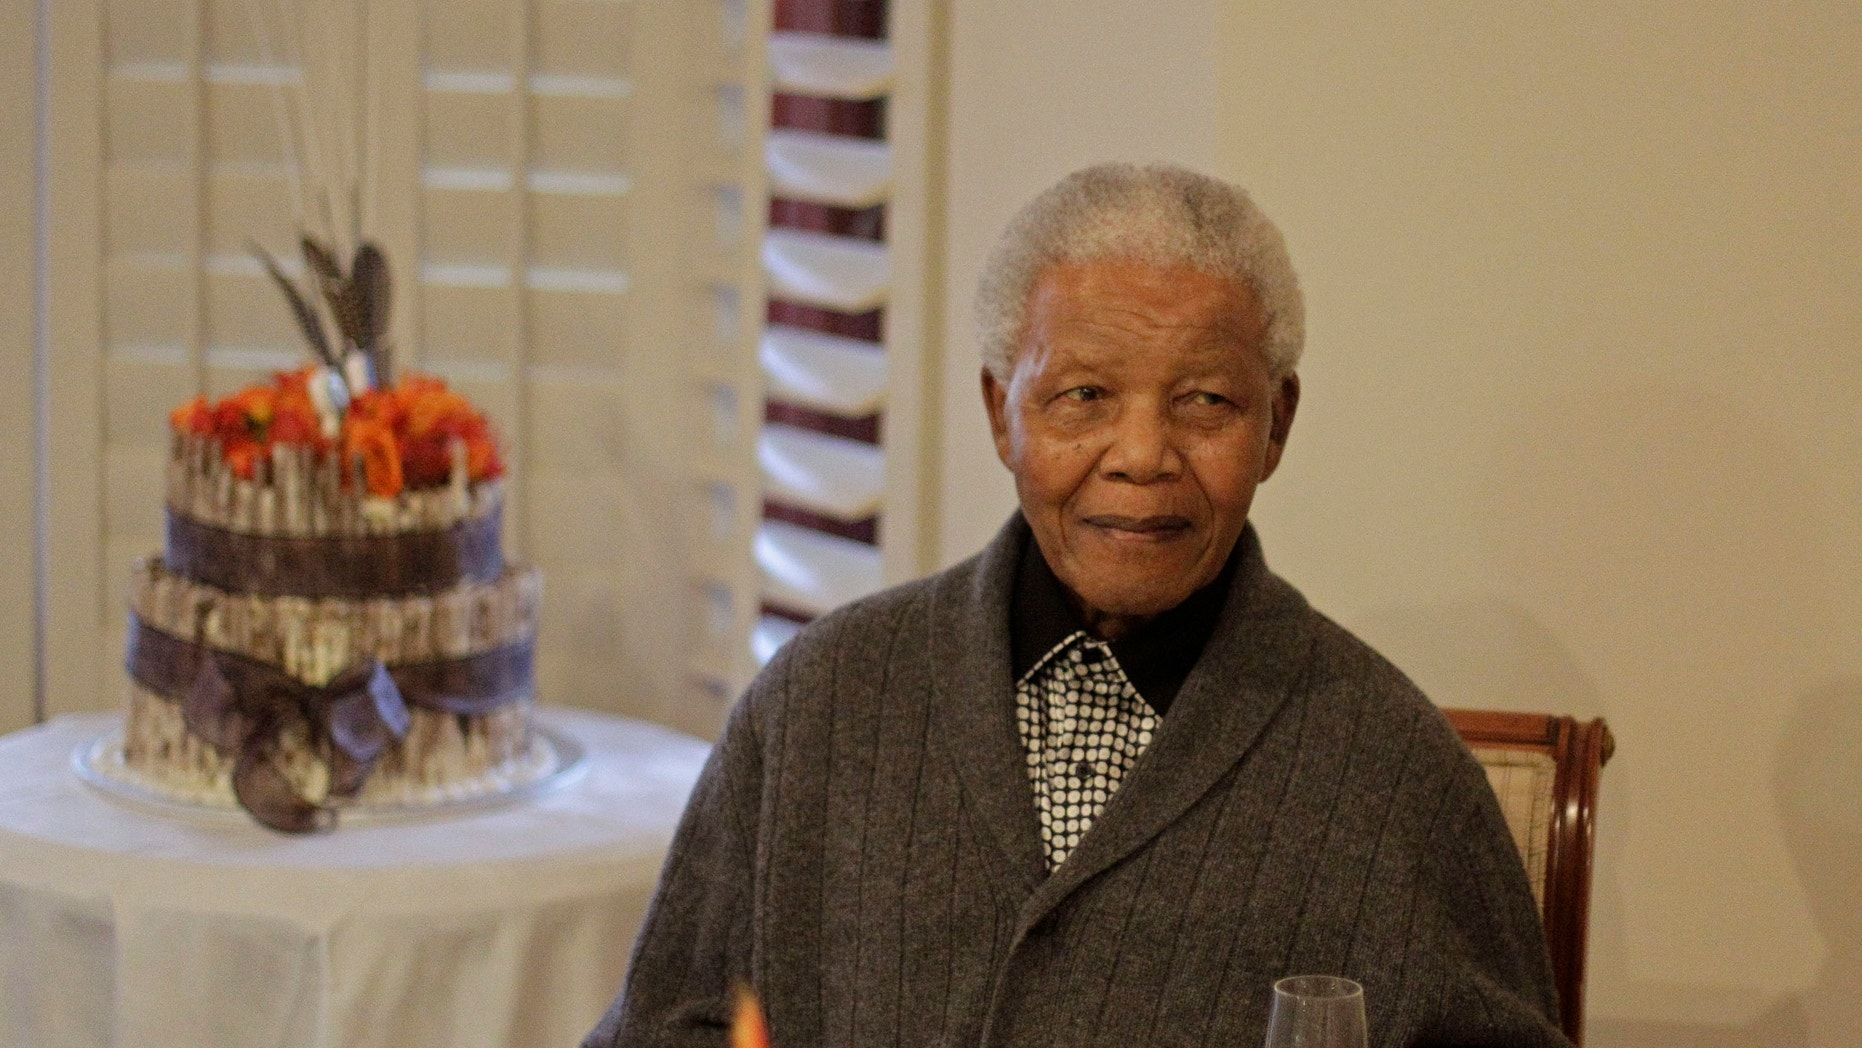 July 18, 2012 - FILE photo of former South African President Nelson Mandela as he celebrates his birthday with family in Qunu, South Africa.